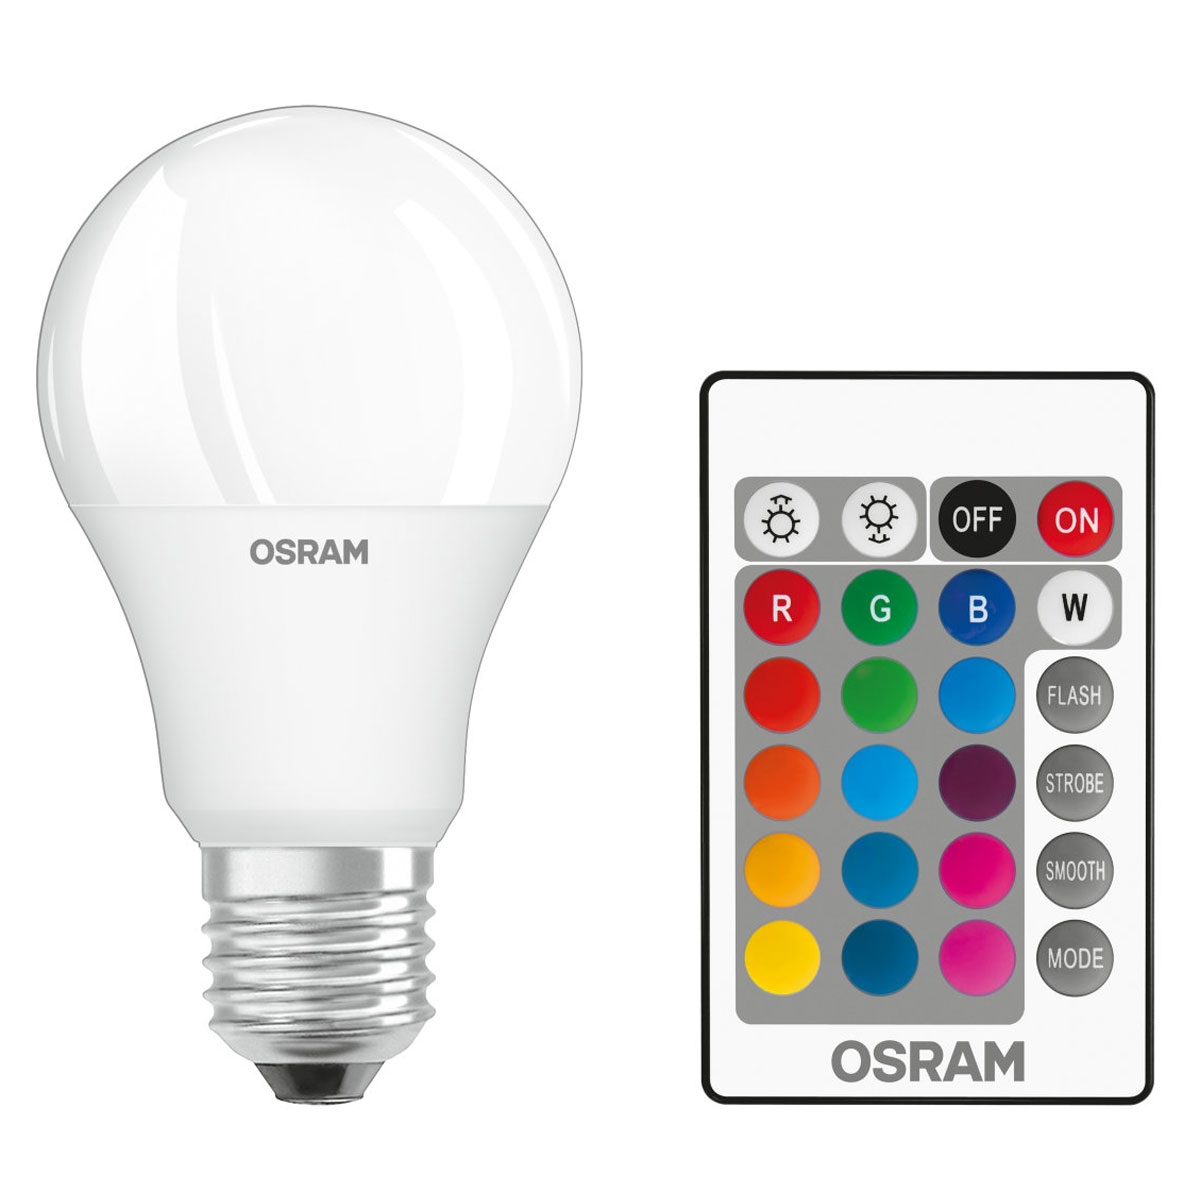 osram ampoule led retrofit rgbw standard t l commande e27 9w 60w a ampoule led osram sur. Black Bedroom Furniture Sets. Home Design Ideas